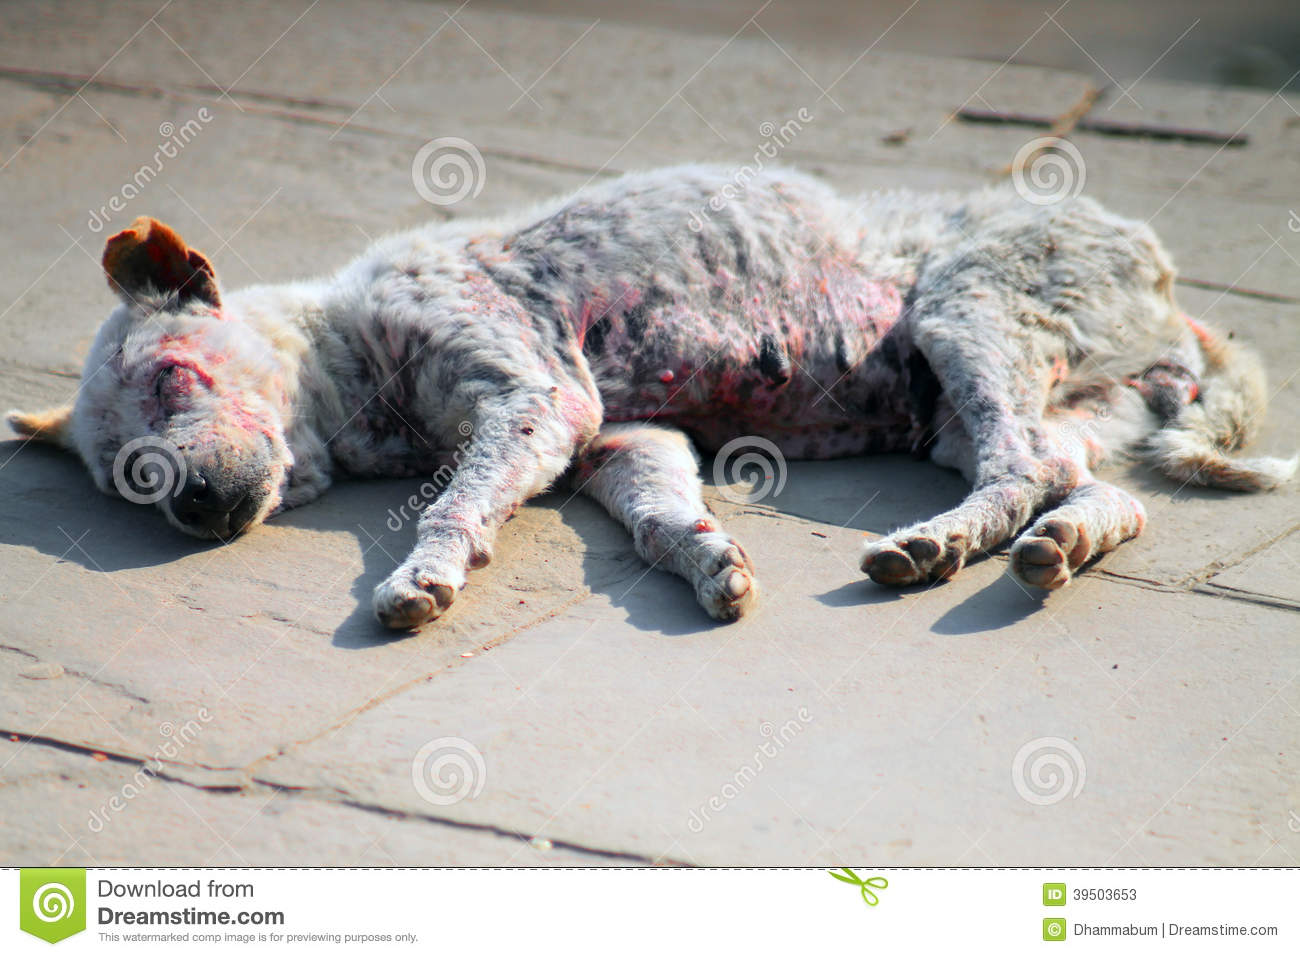 Ill dying dog in India